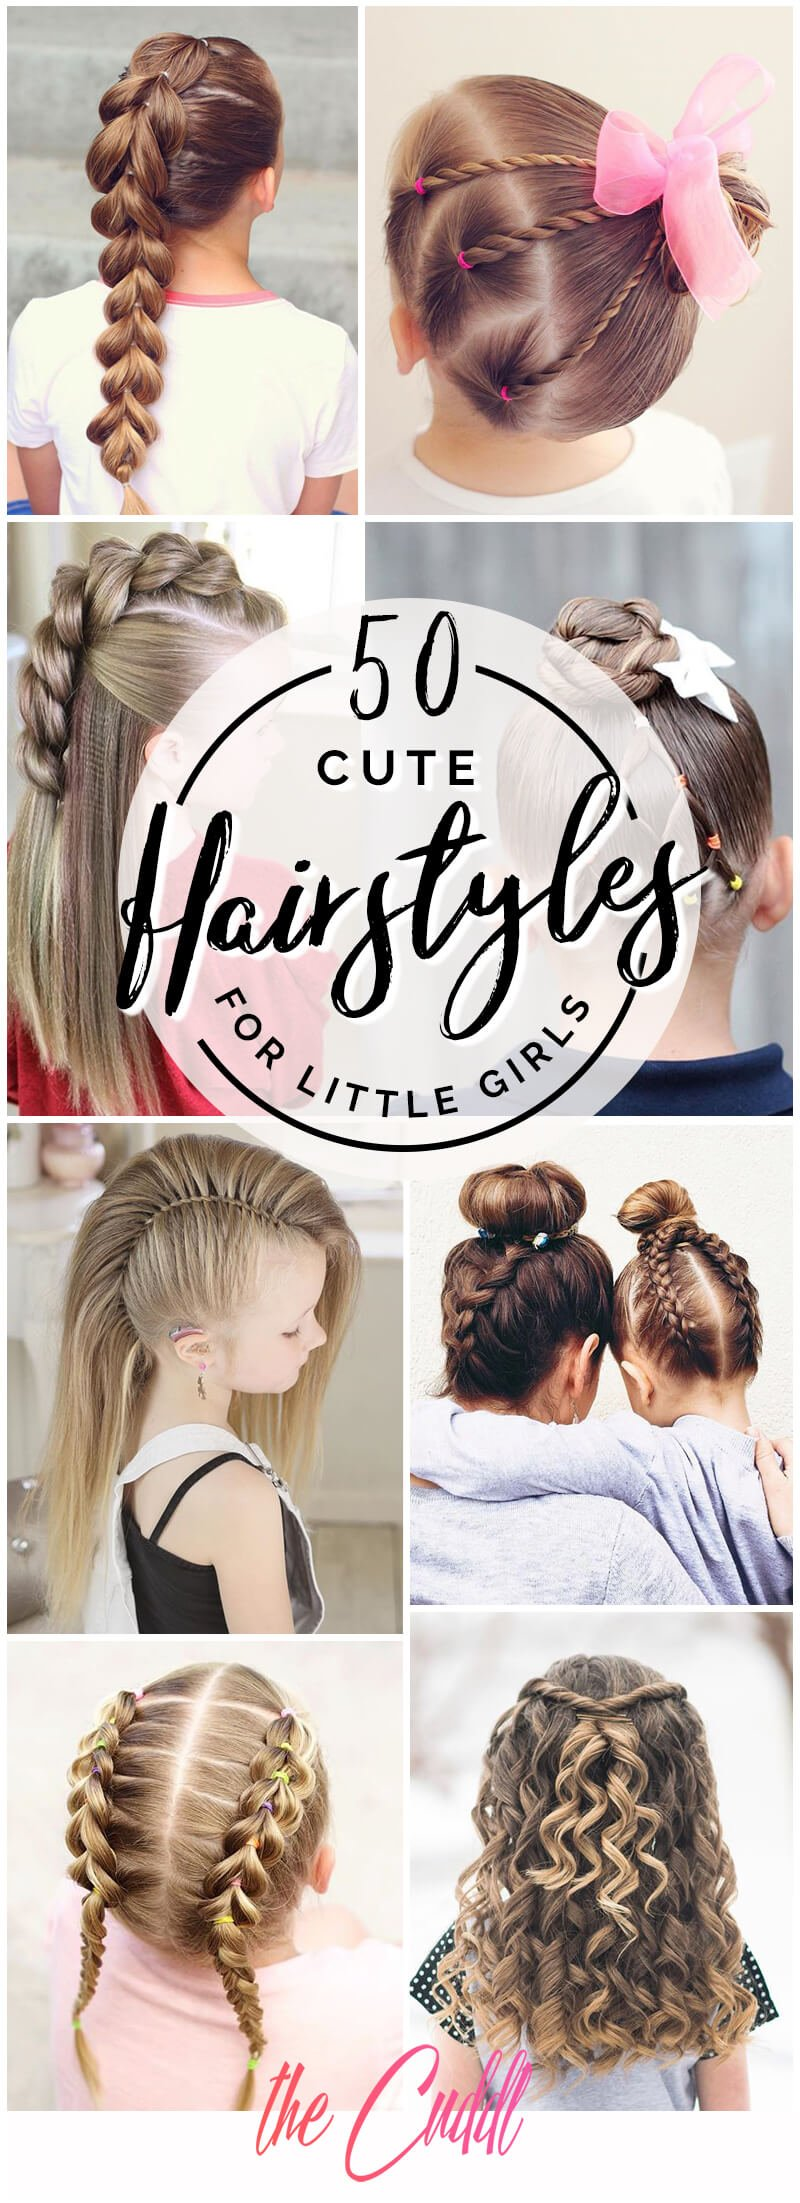 10 Pretty Perfect Cute Hairstyles for Little Girls to Show Off